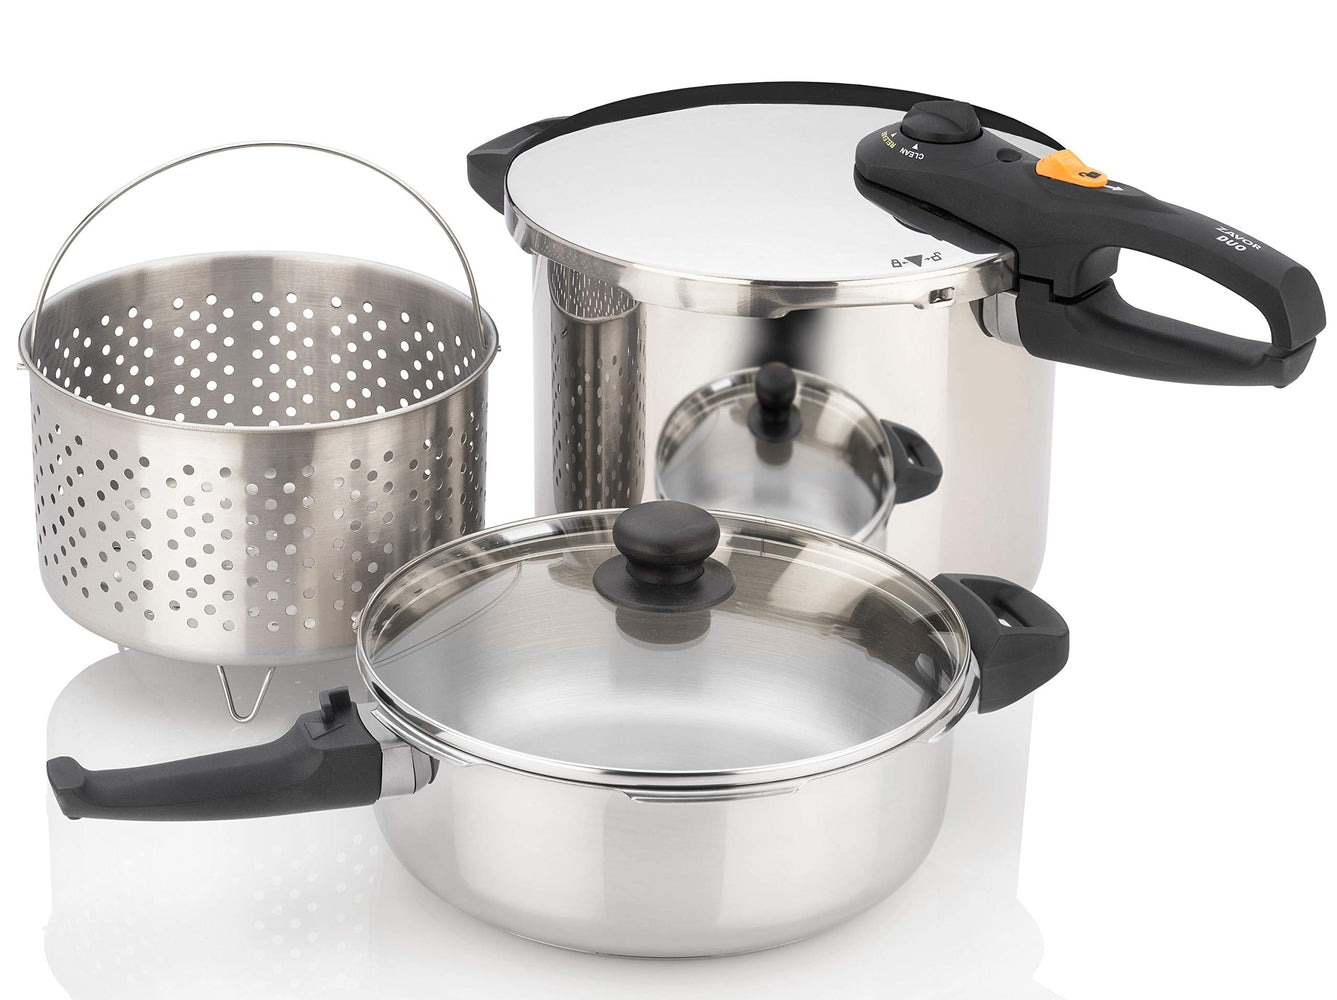 Duo Combi Set 4.2 qt and 8.4 qt